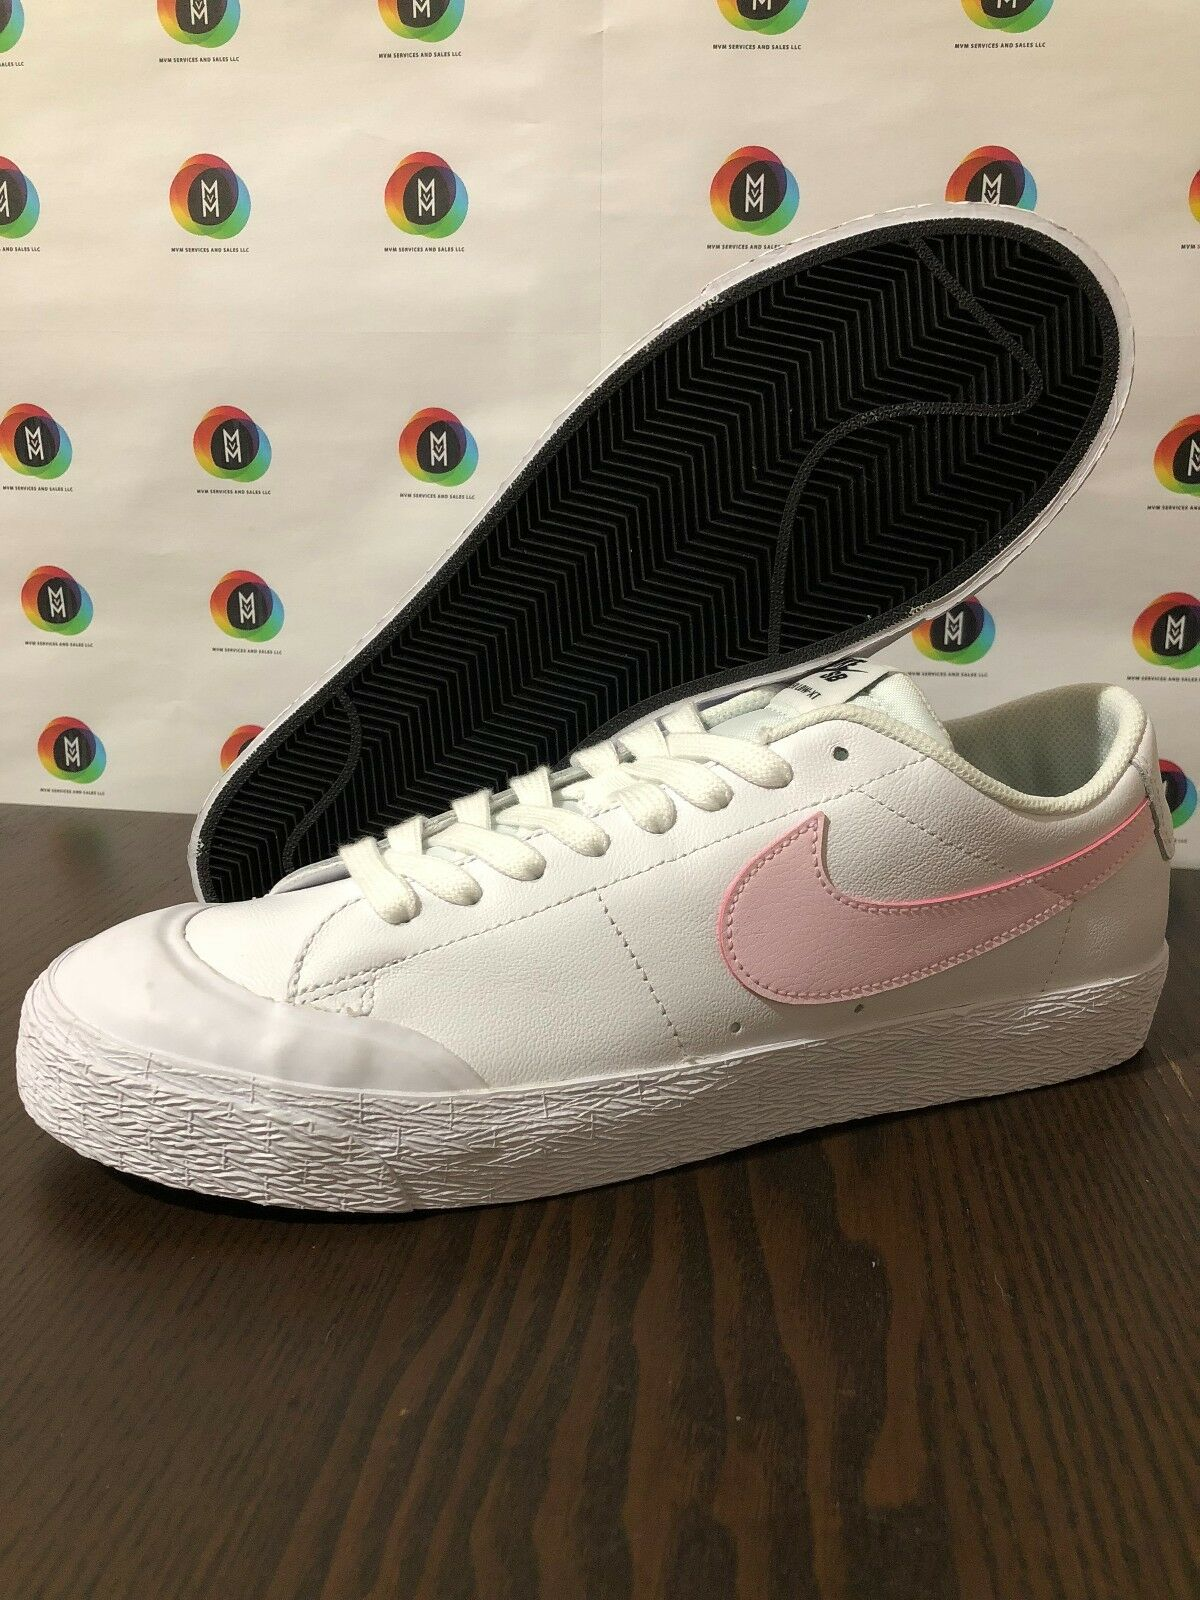 Nike SB Blazer Zoom Low XT  Men's White/Prism Pink/Black 864348-160 Size 10